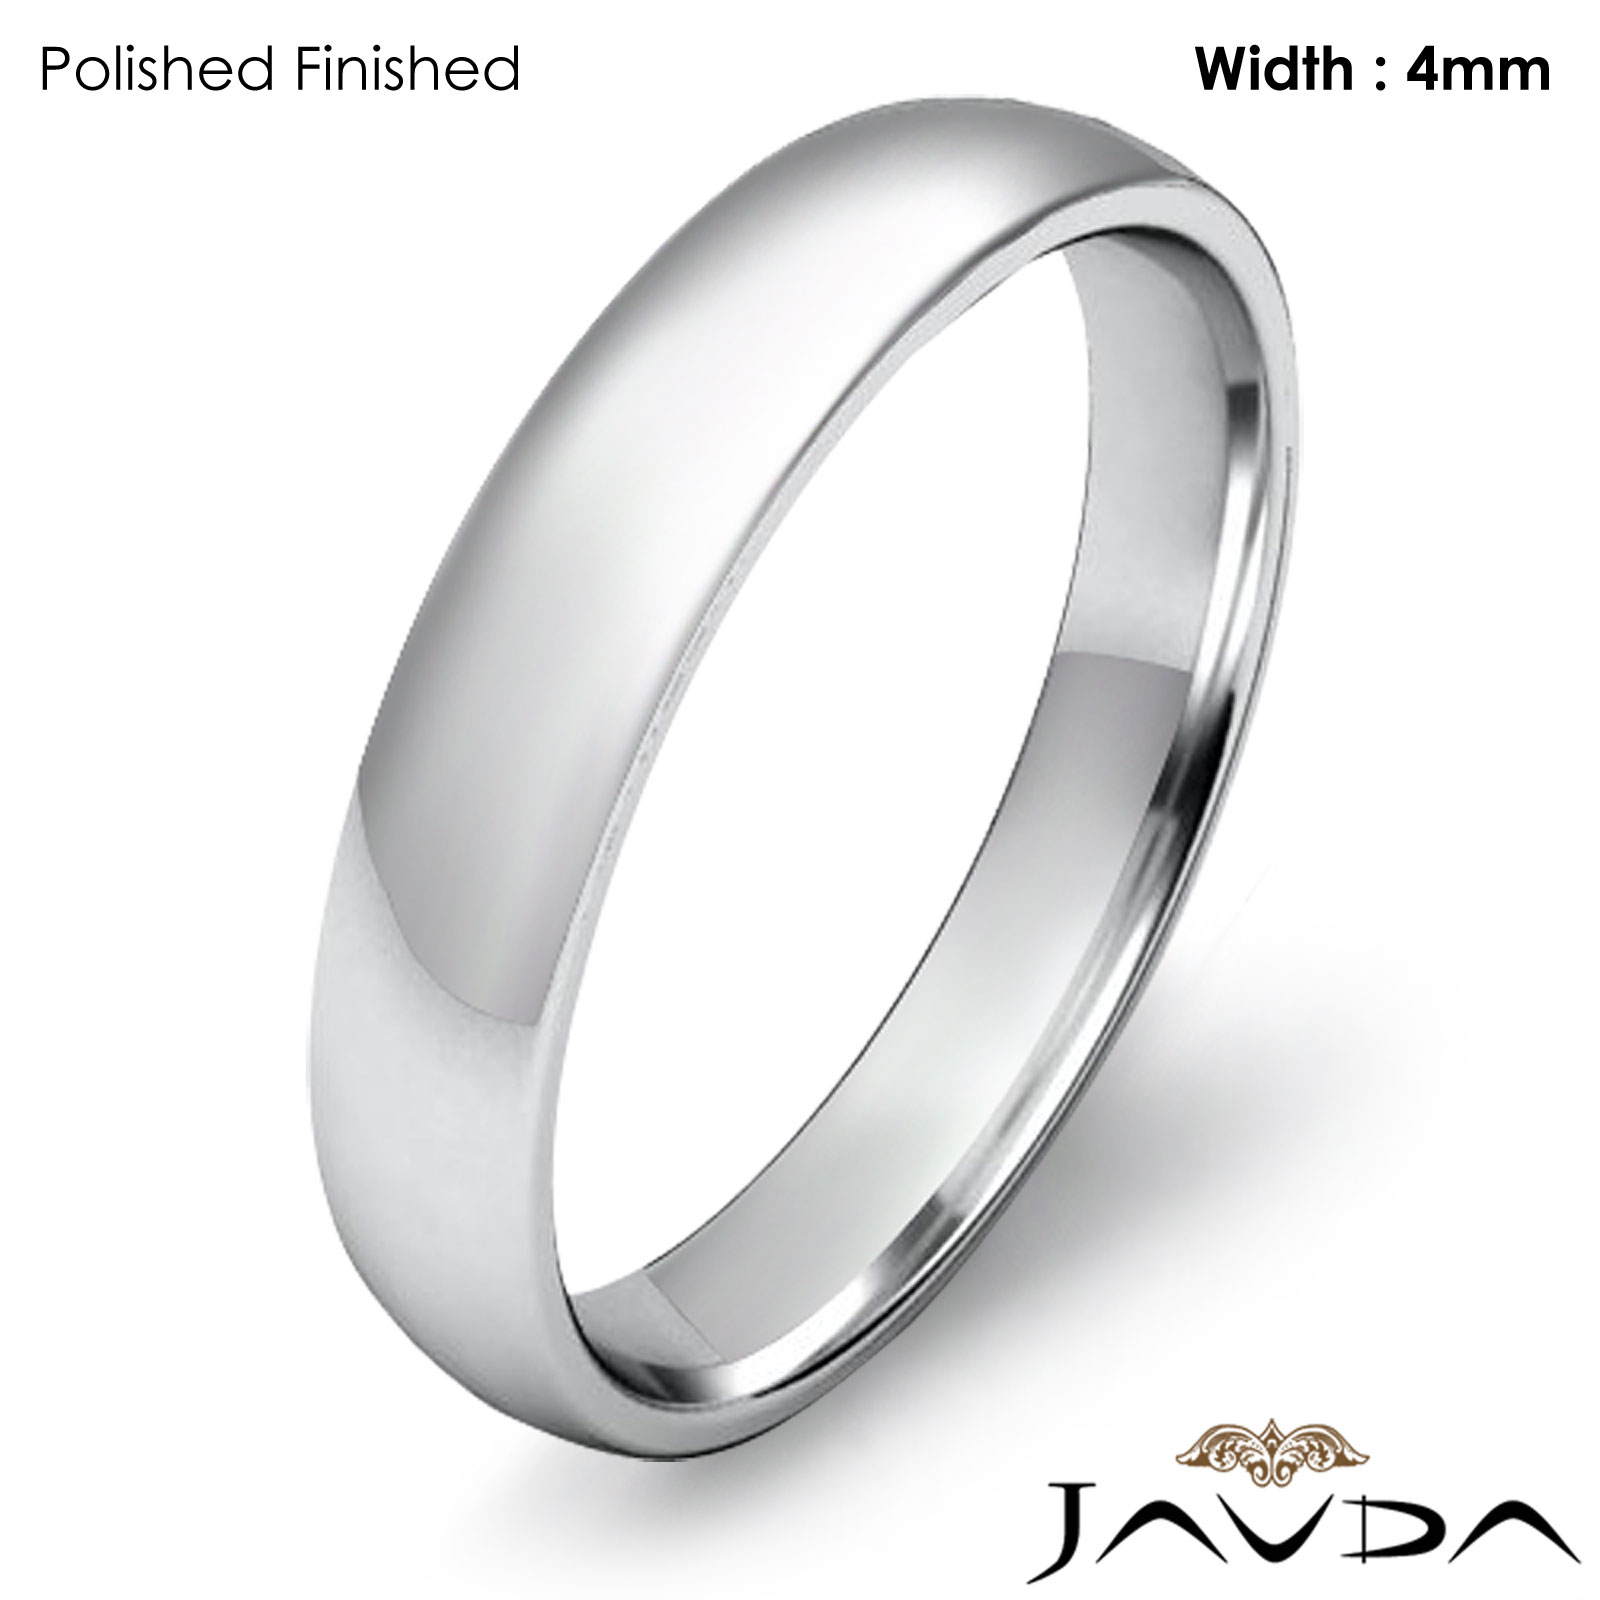 Dome Shaped Bands: 4mm Wedding Ring 14k White Gold Dome Shape Light Comfort